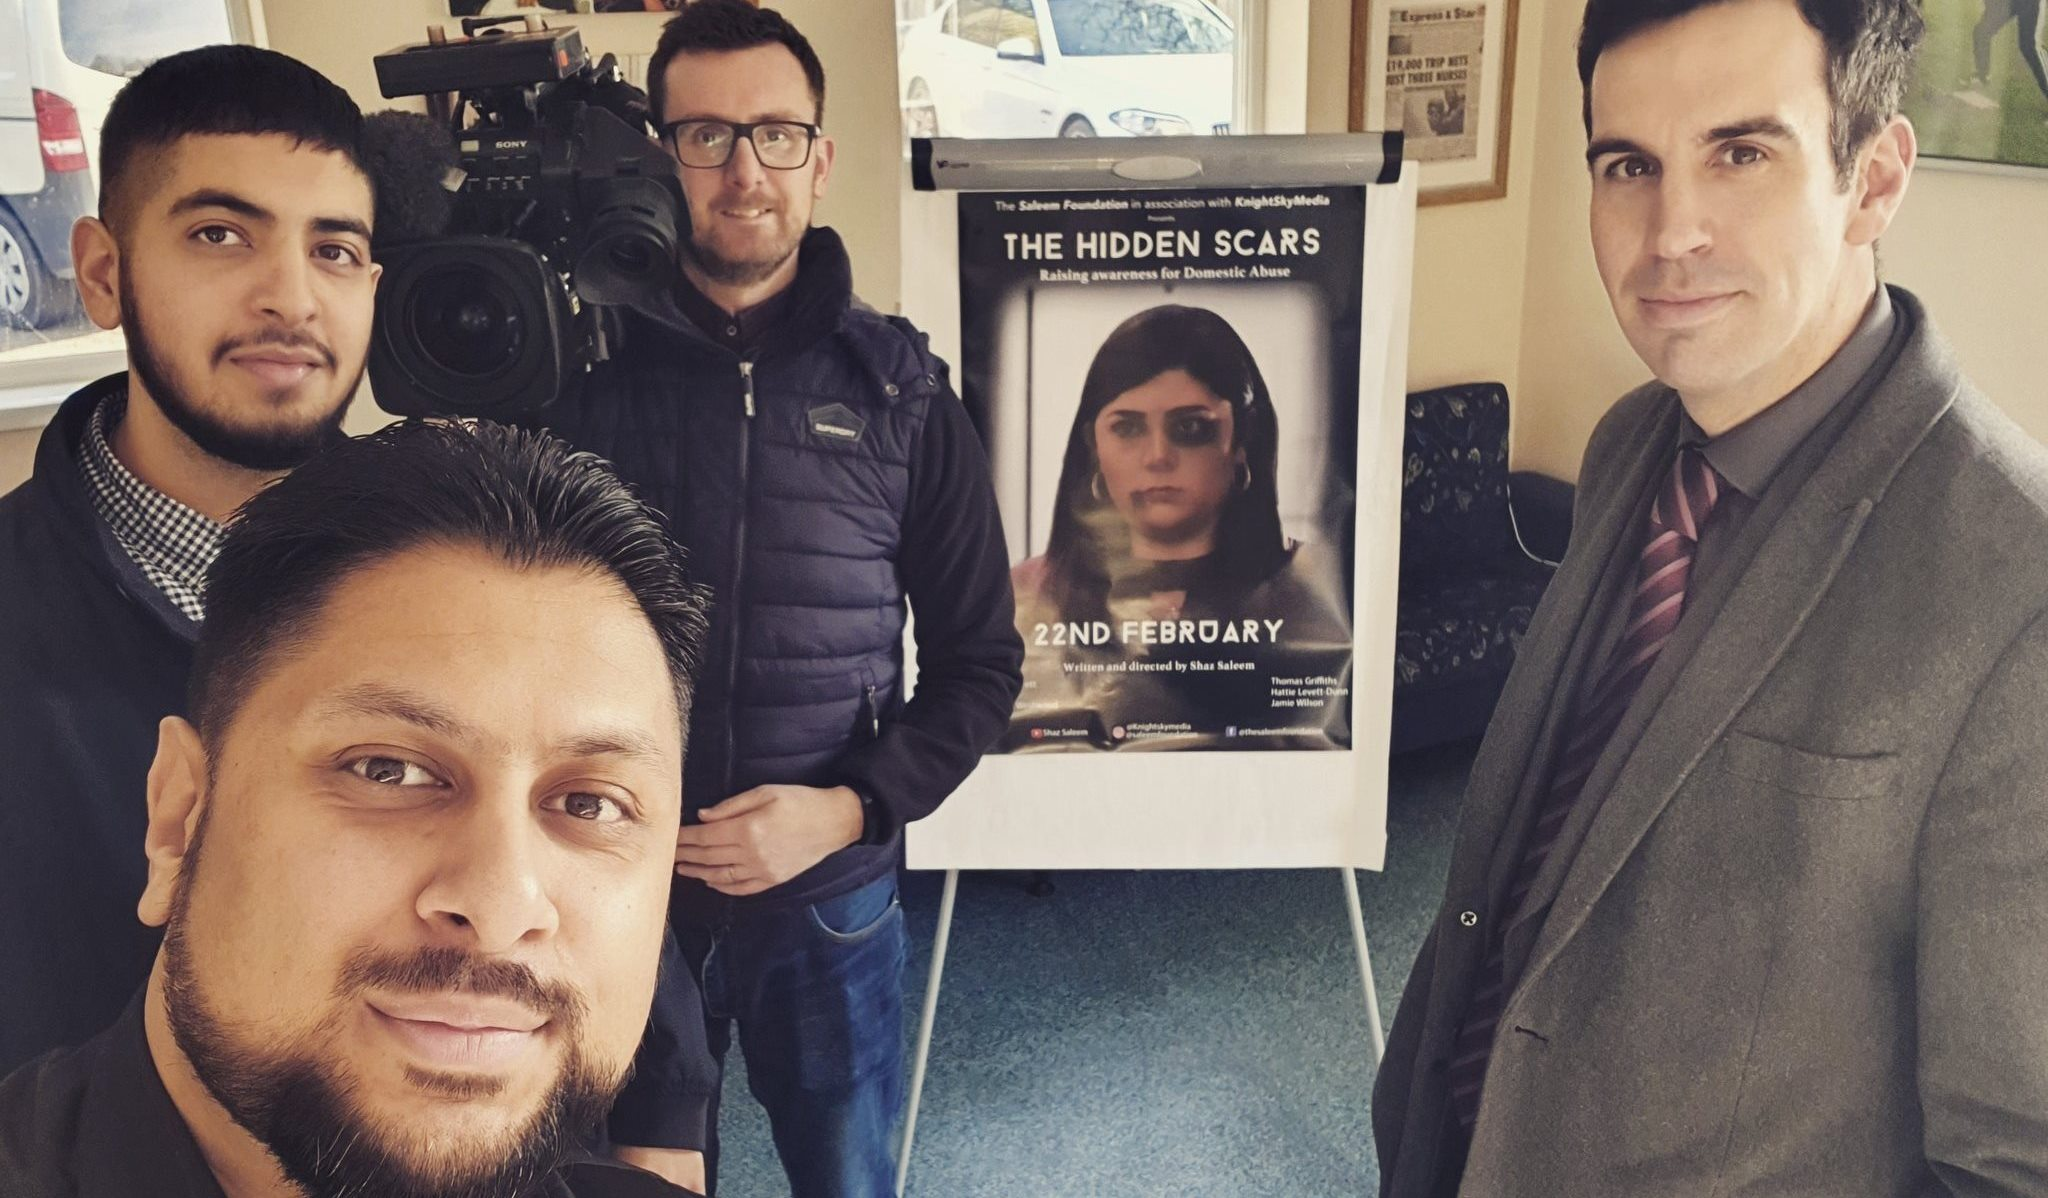 Black Country film to highlight the horrors of domestic violence